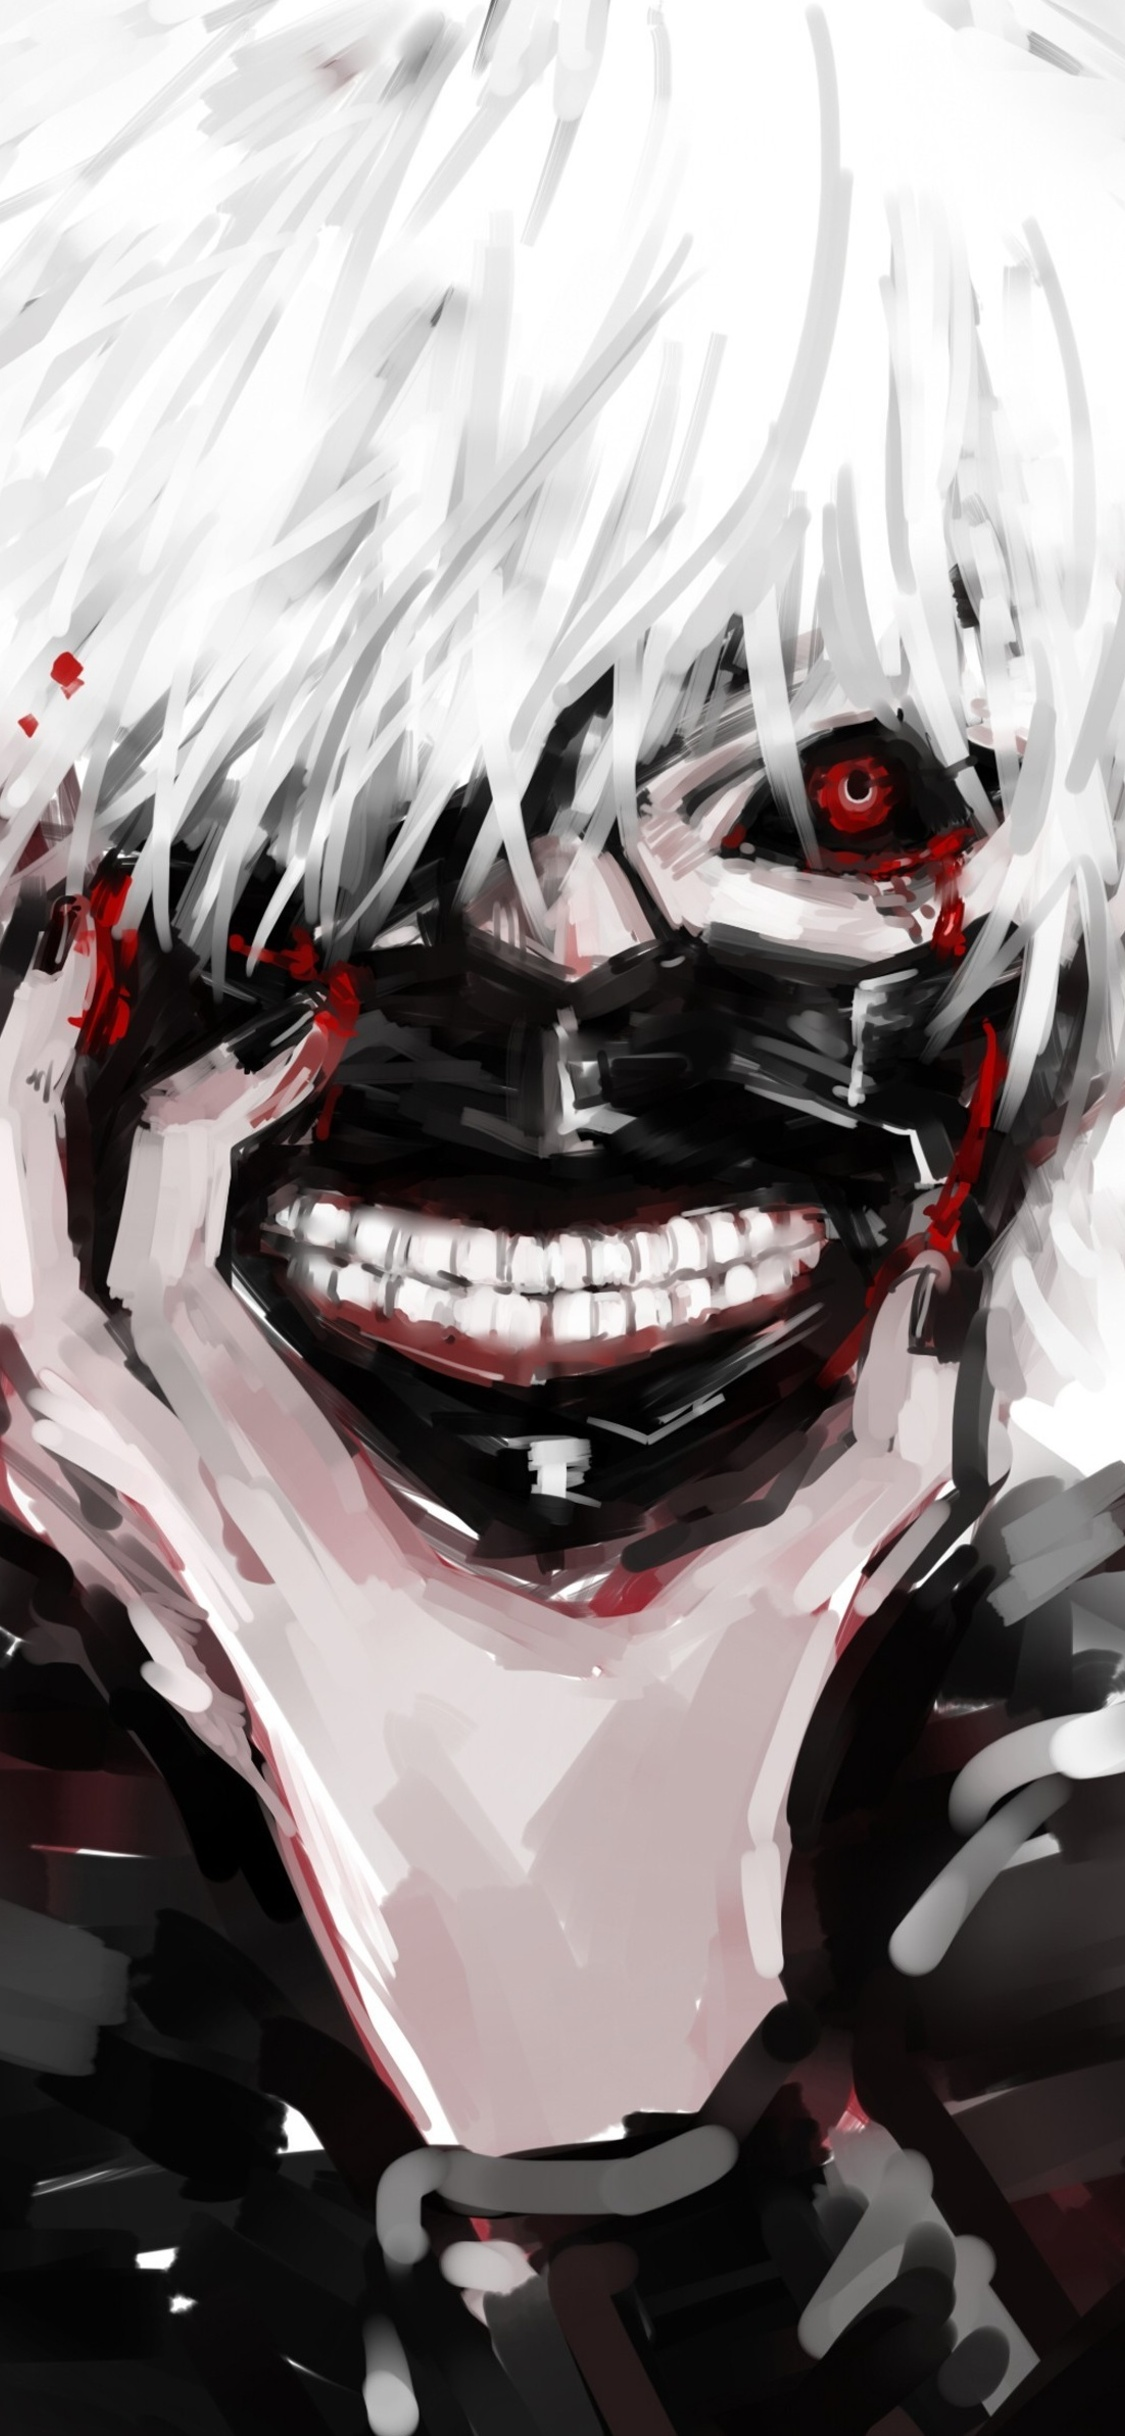 The perfect gift for anime fans or tokyo ghoul wallpaper fan. 1125x2436 Kaneki Ken Tokyo Ghoul Iphone XS,Iphone 10 ...